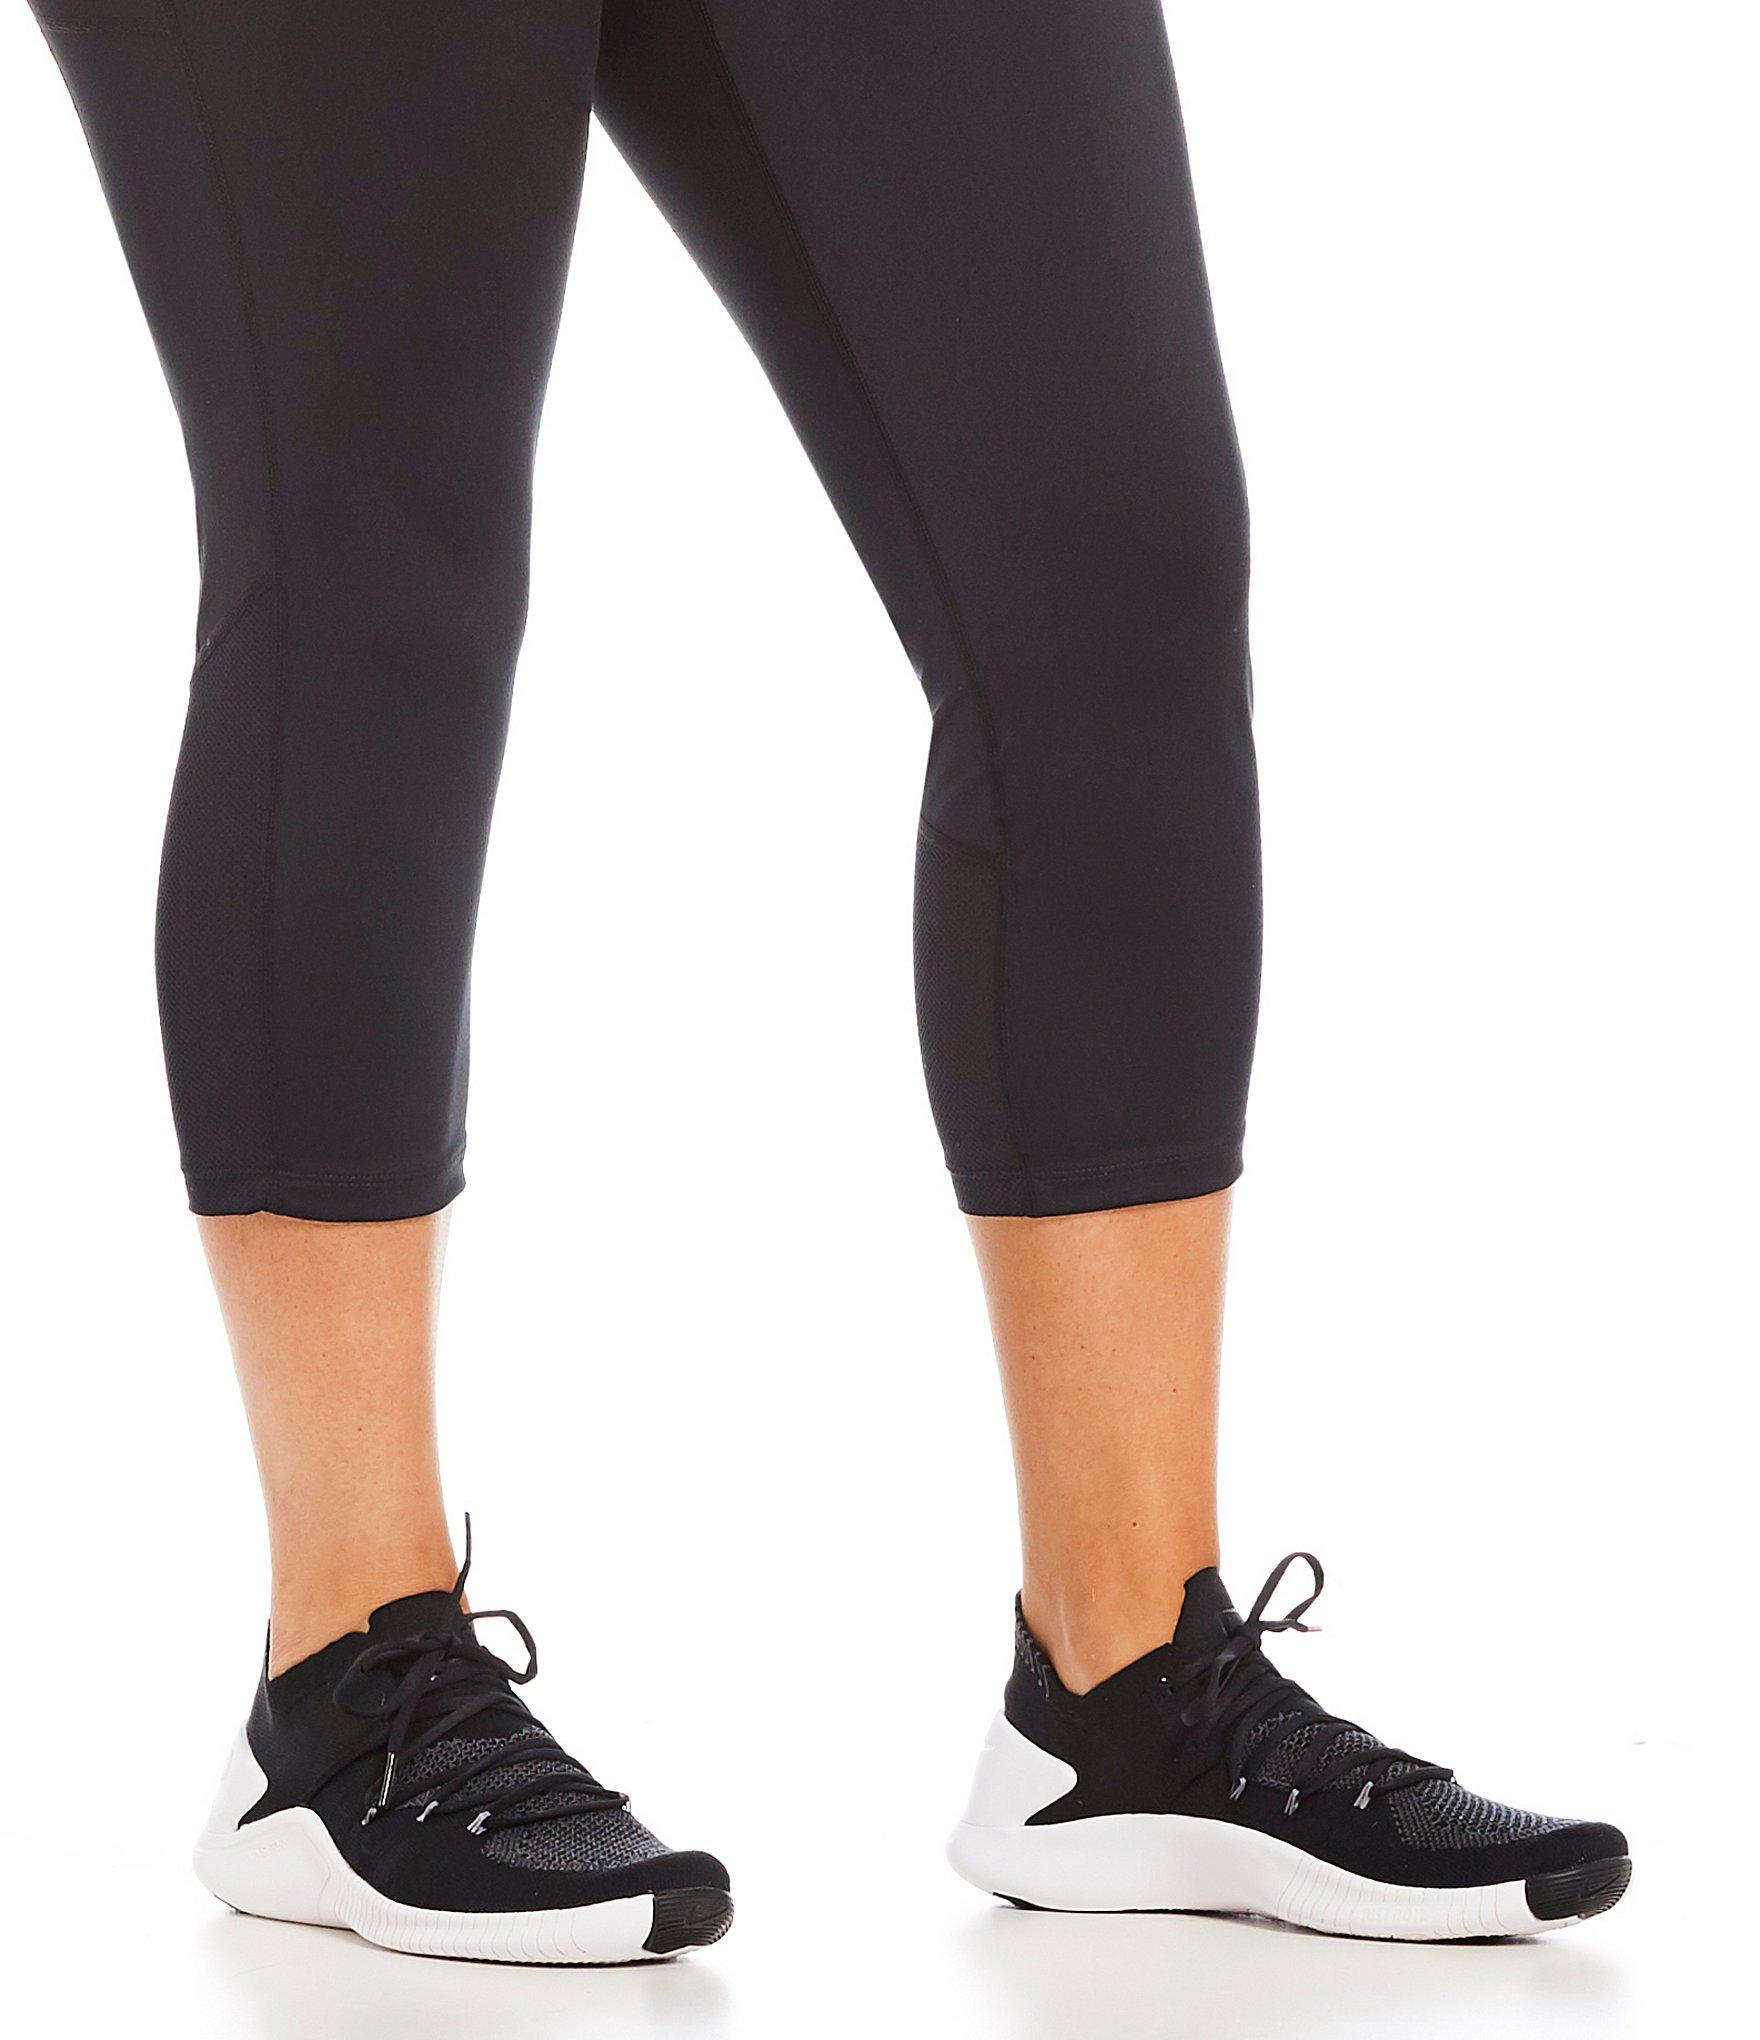 sports shoes e19a1 5063c Lyst - Nike Women s Free Tr Flyknit 3 Training Shoes in Black